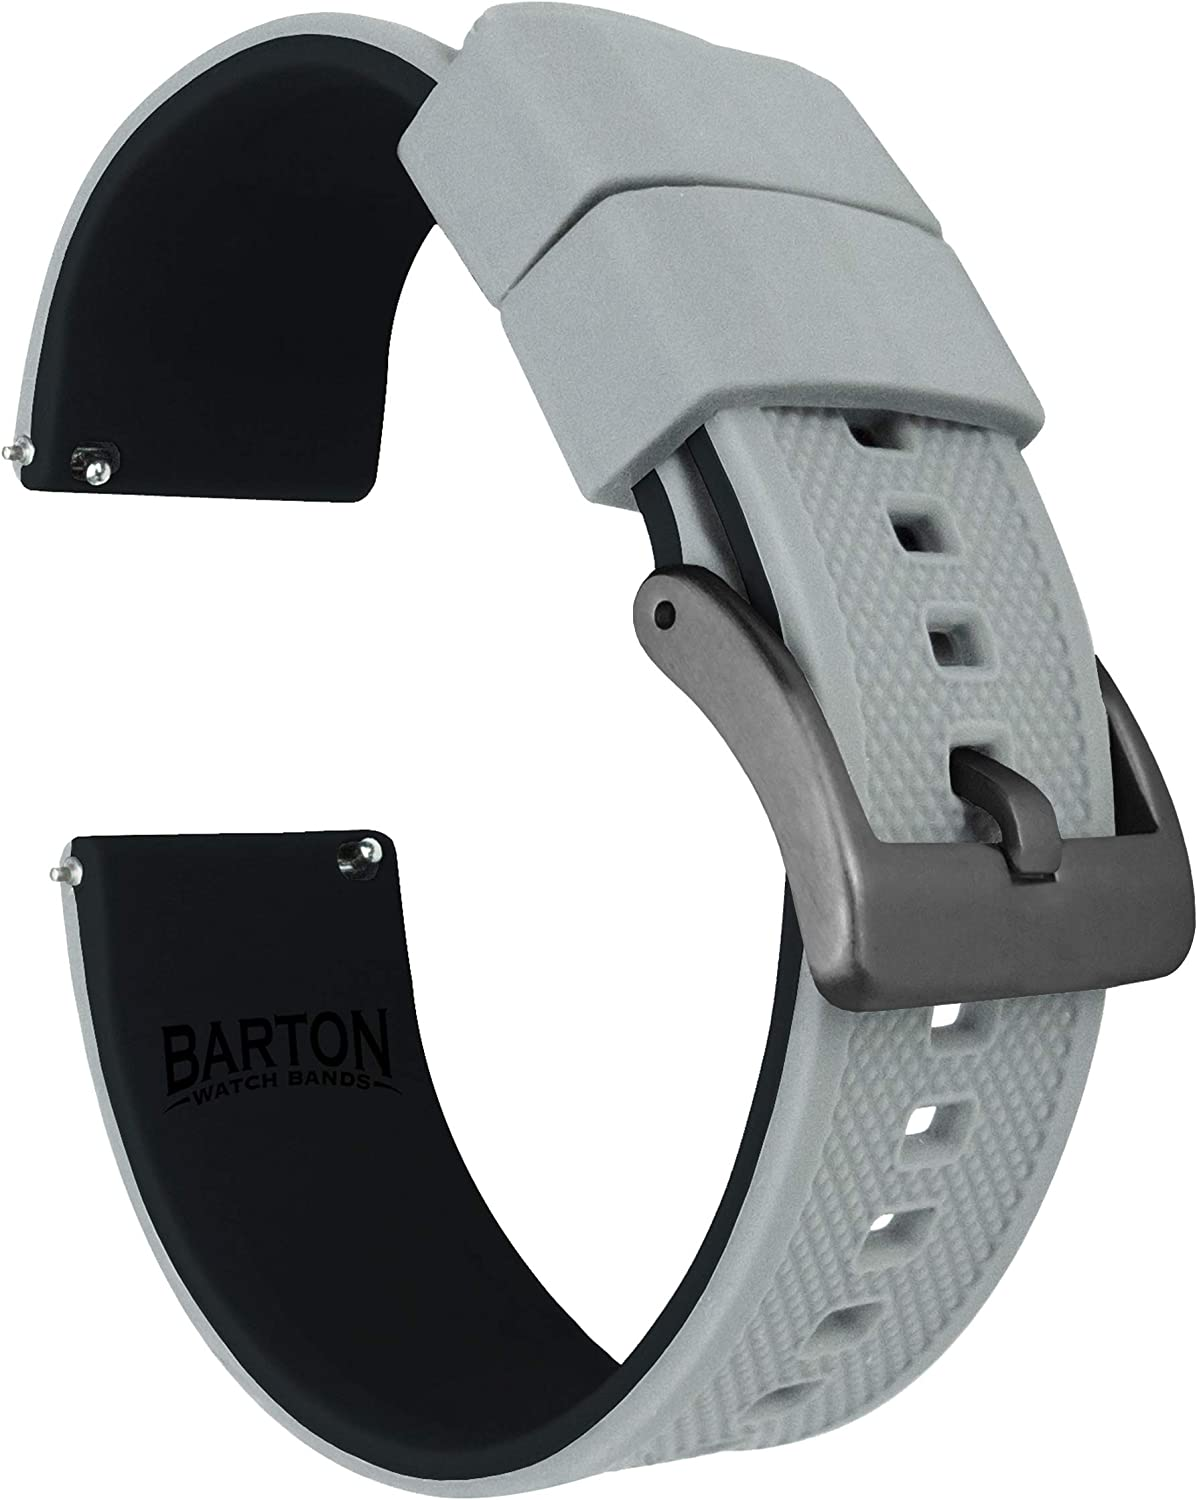 Barton Elite Silicone Watch Bands - Gunmetal Grey Buckle Quick Release - Choose Color - 18mm, 19mm, 20mm, 21mm, 22mm, 23mm & 24mm Watch Straps